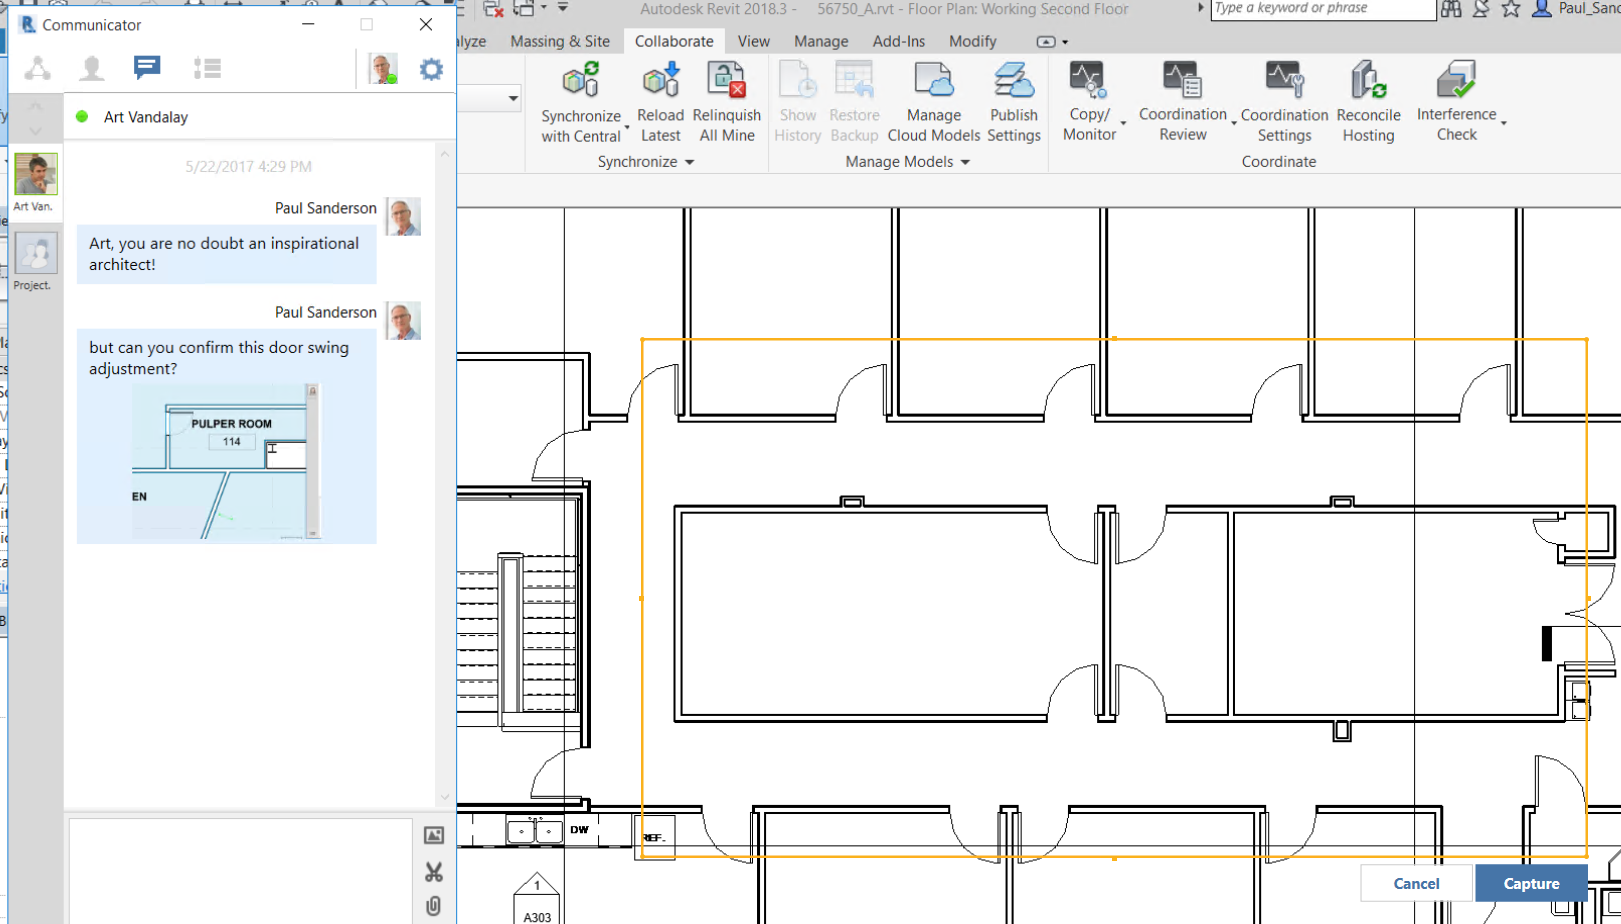 Screenshot in C4R of designer capturing a screenshot of the area where he is requesting for design edits while worksharing in Collaboration for Revit.